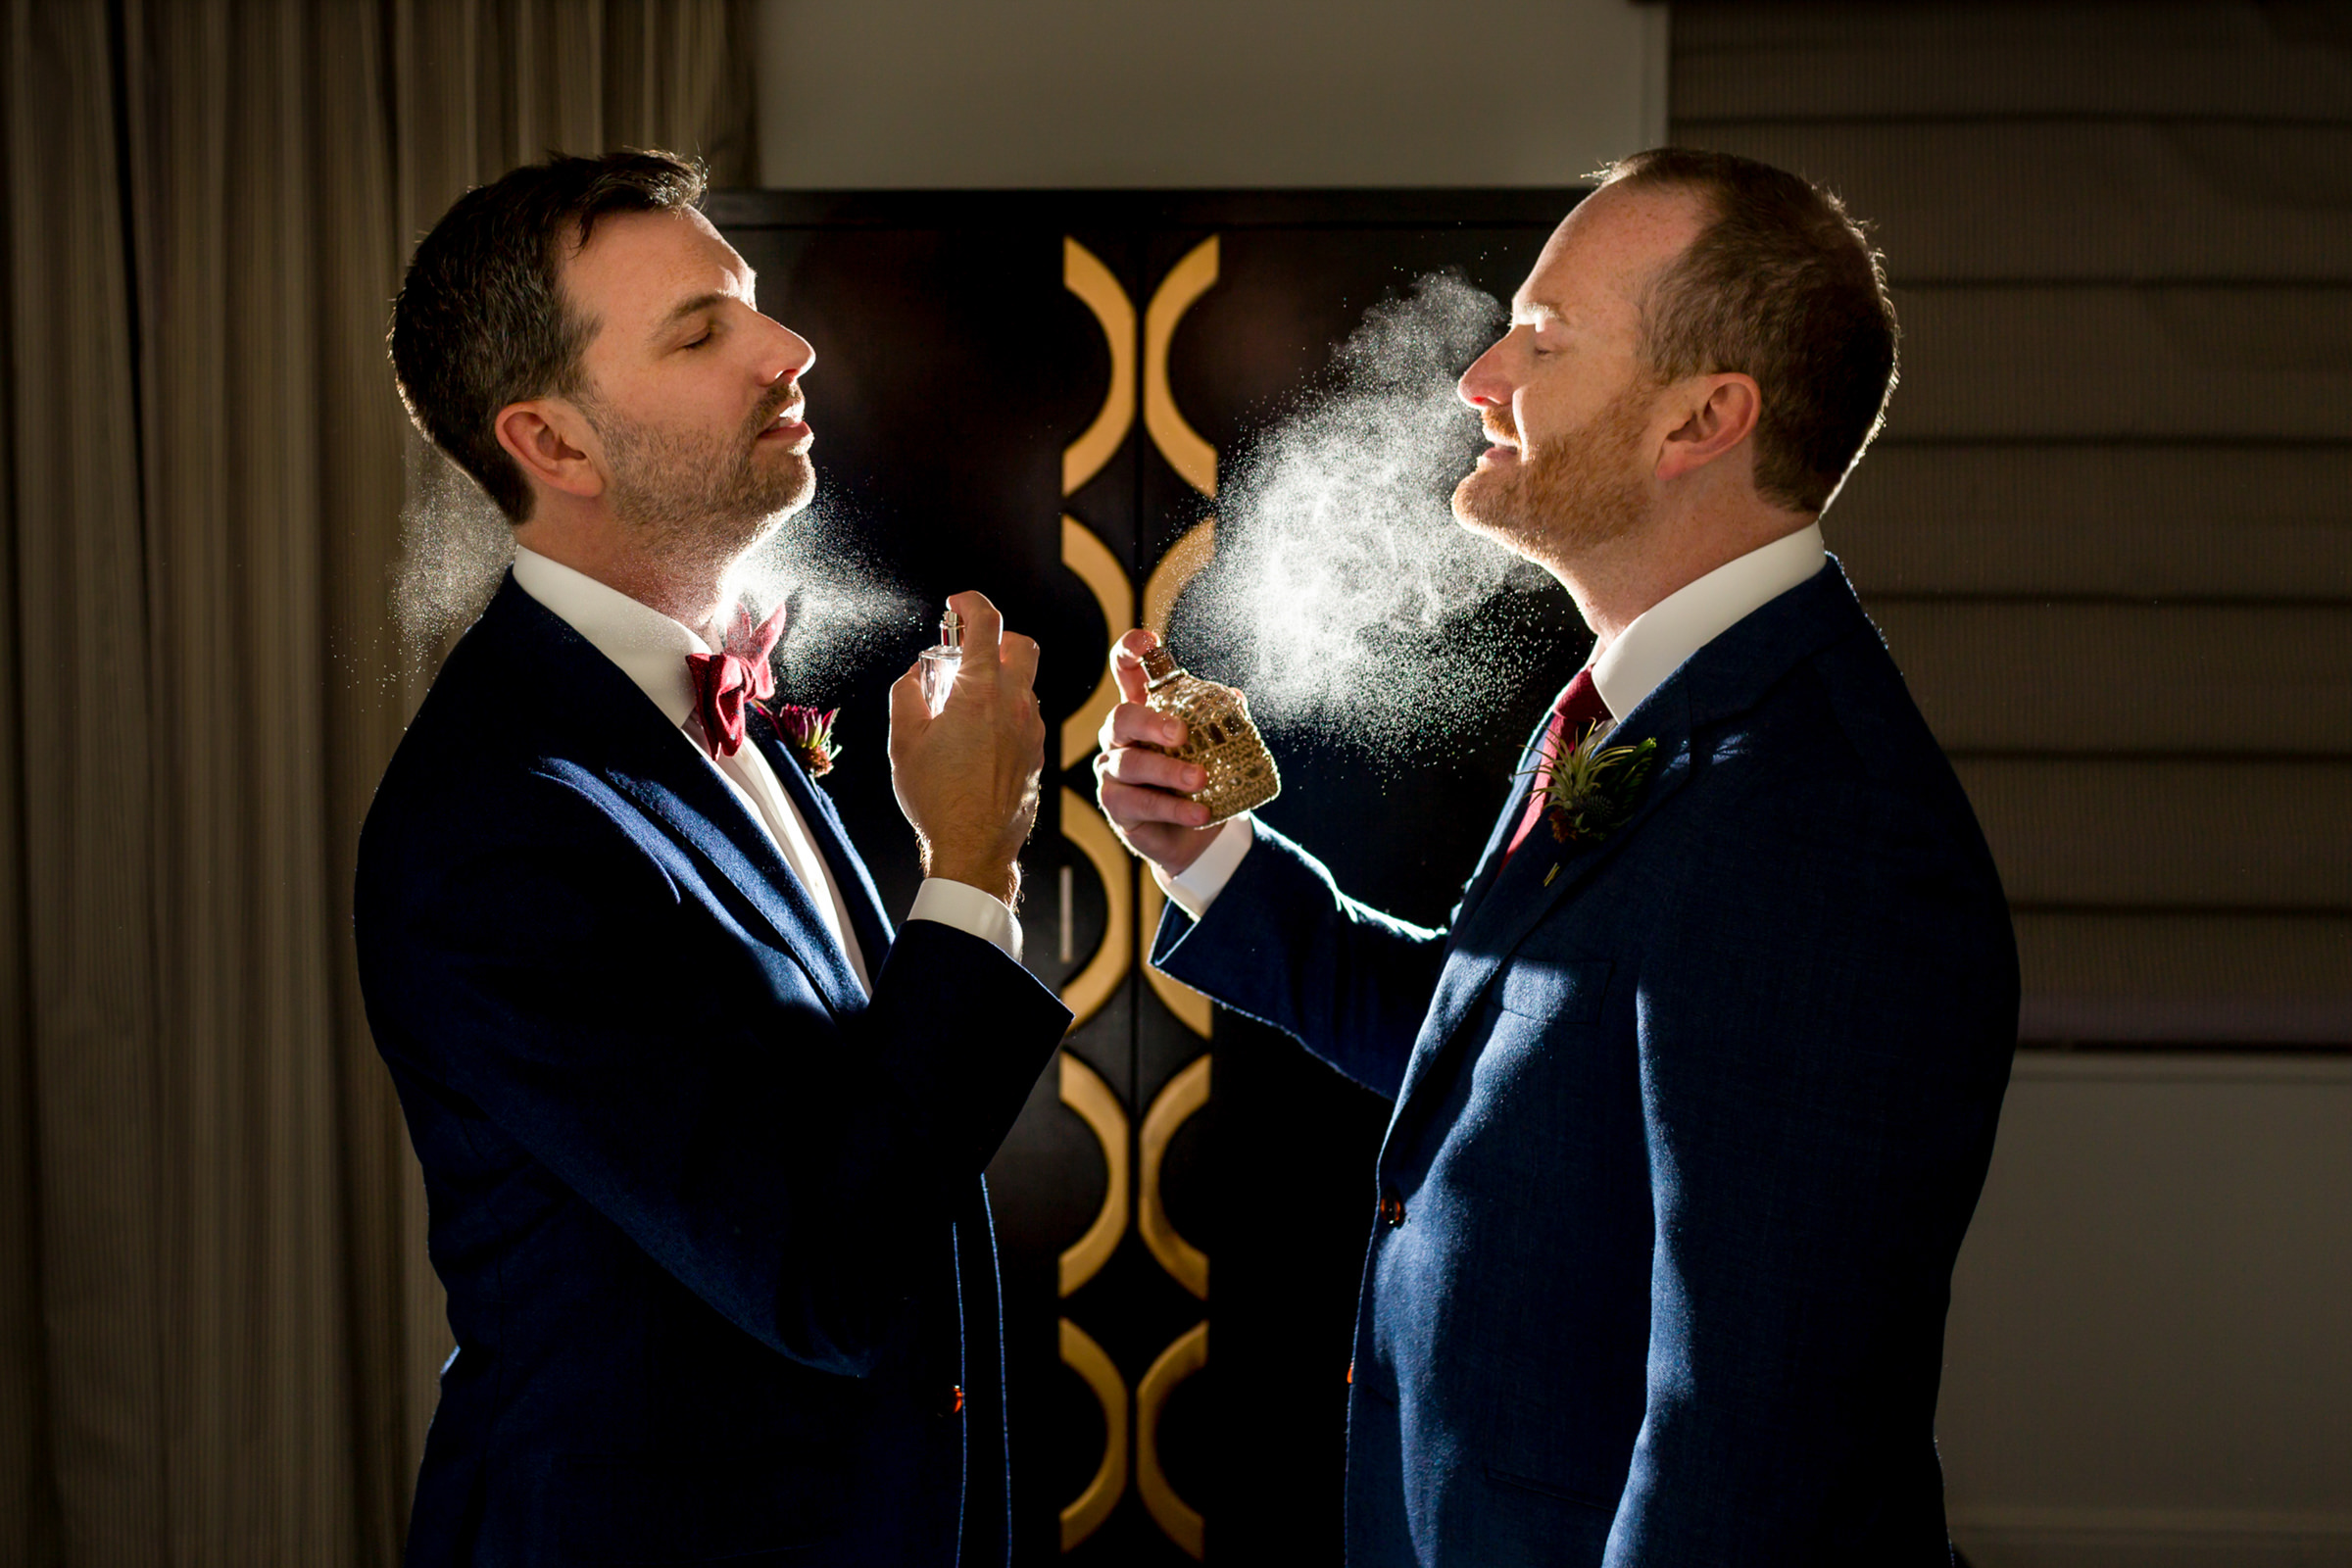 Two grooms in mist of cologne - photo by Procopio Photography